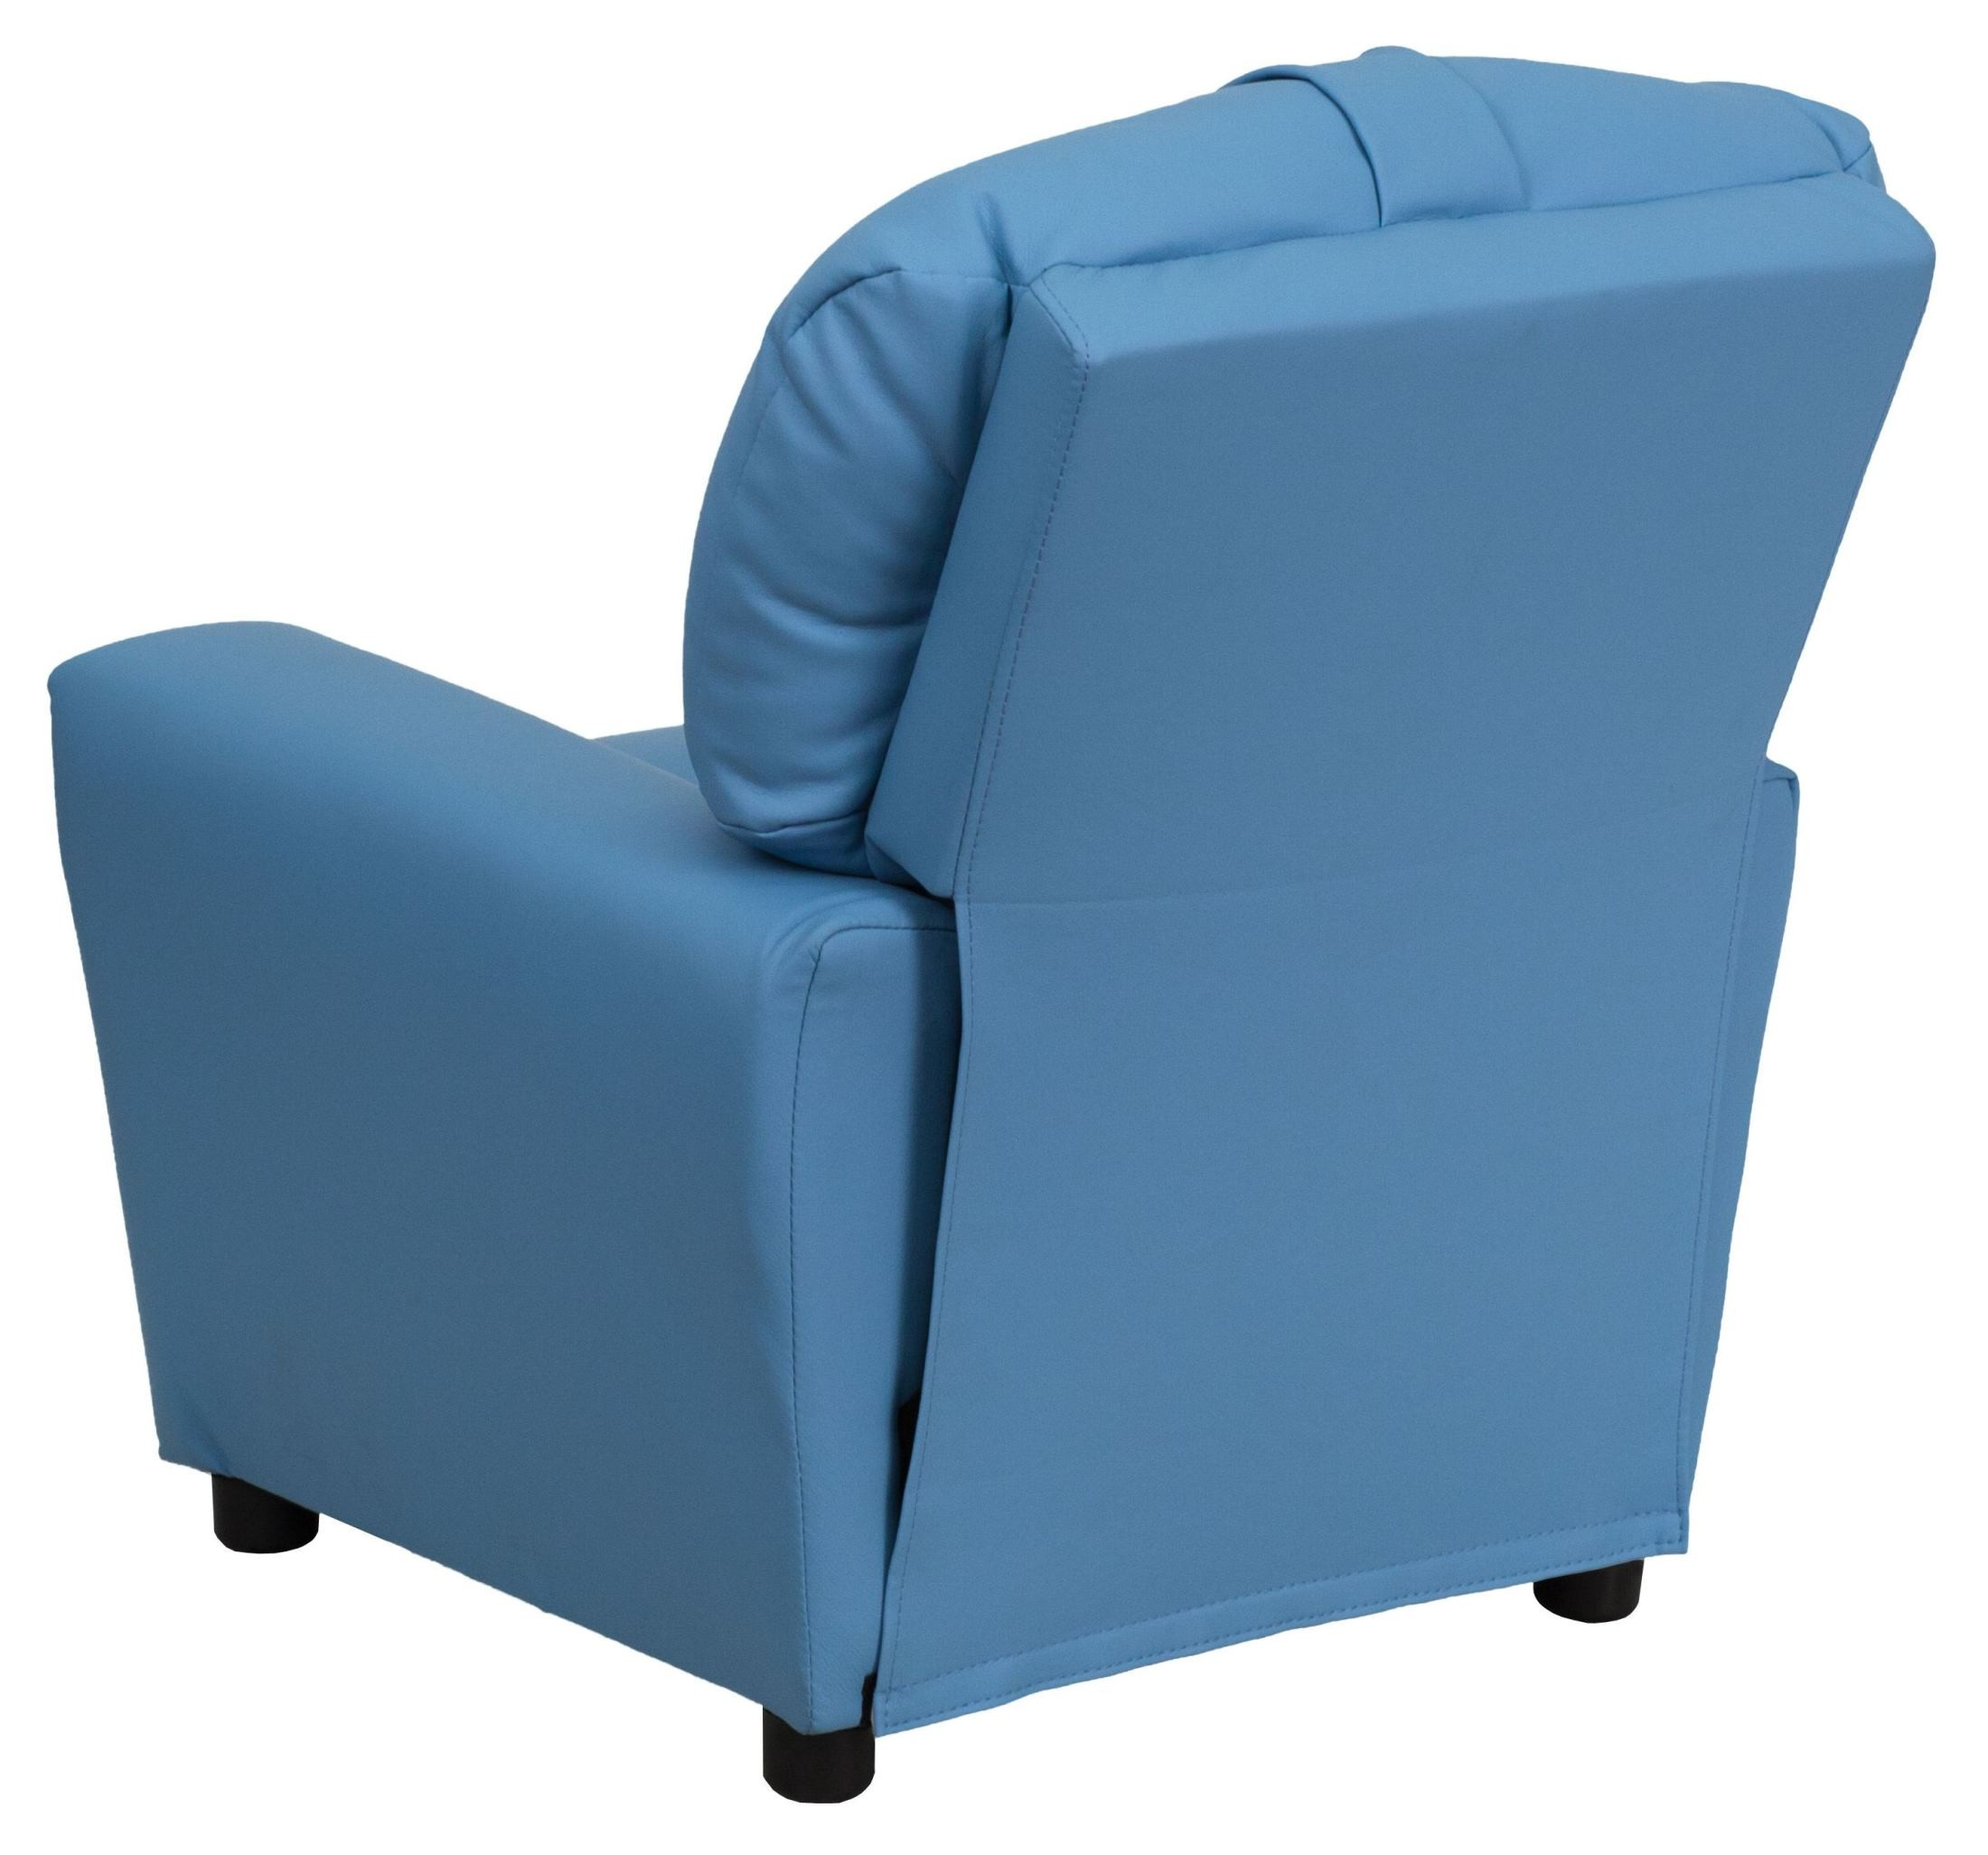 Light Blue Vinyl Kids Recliner With Cup Holder From